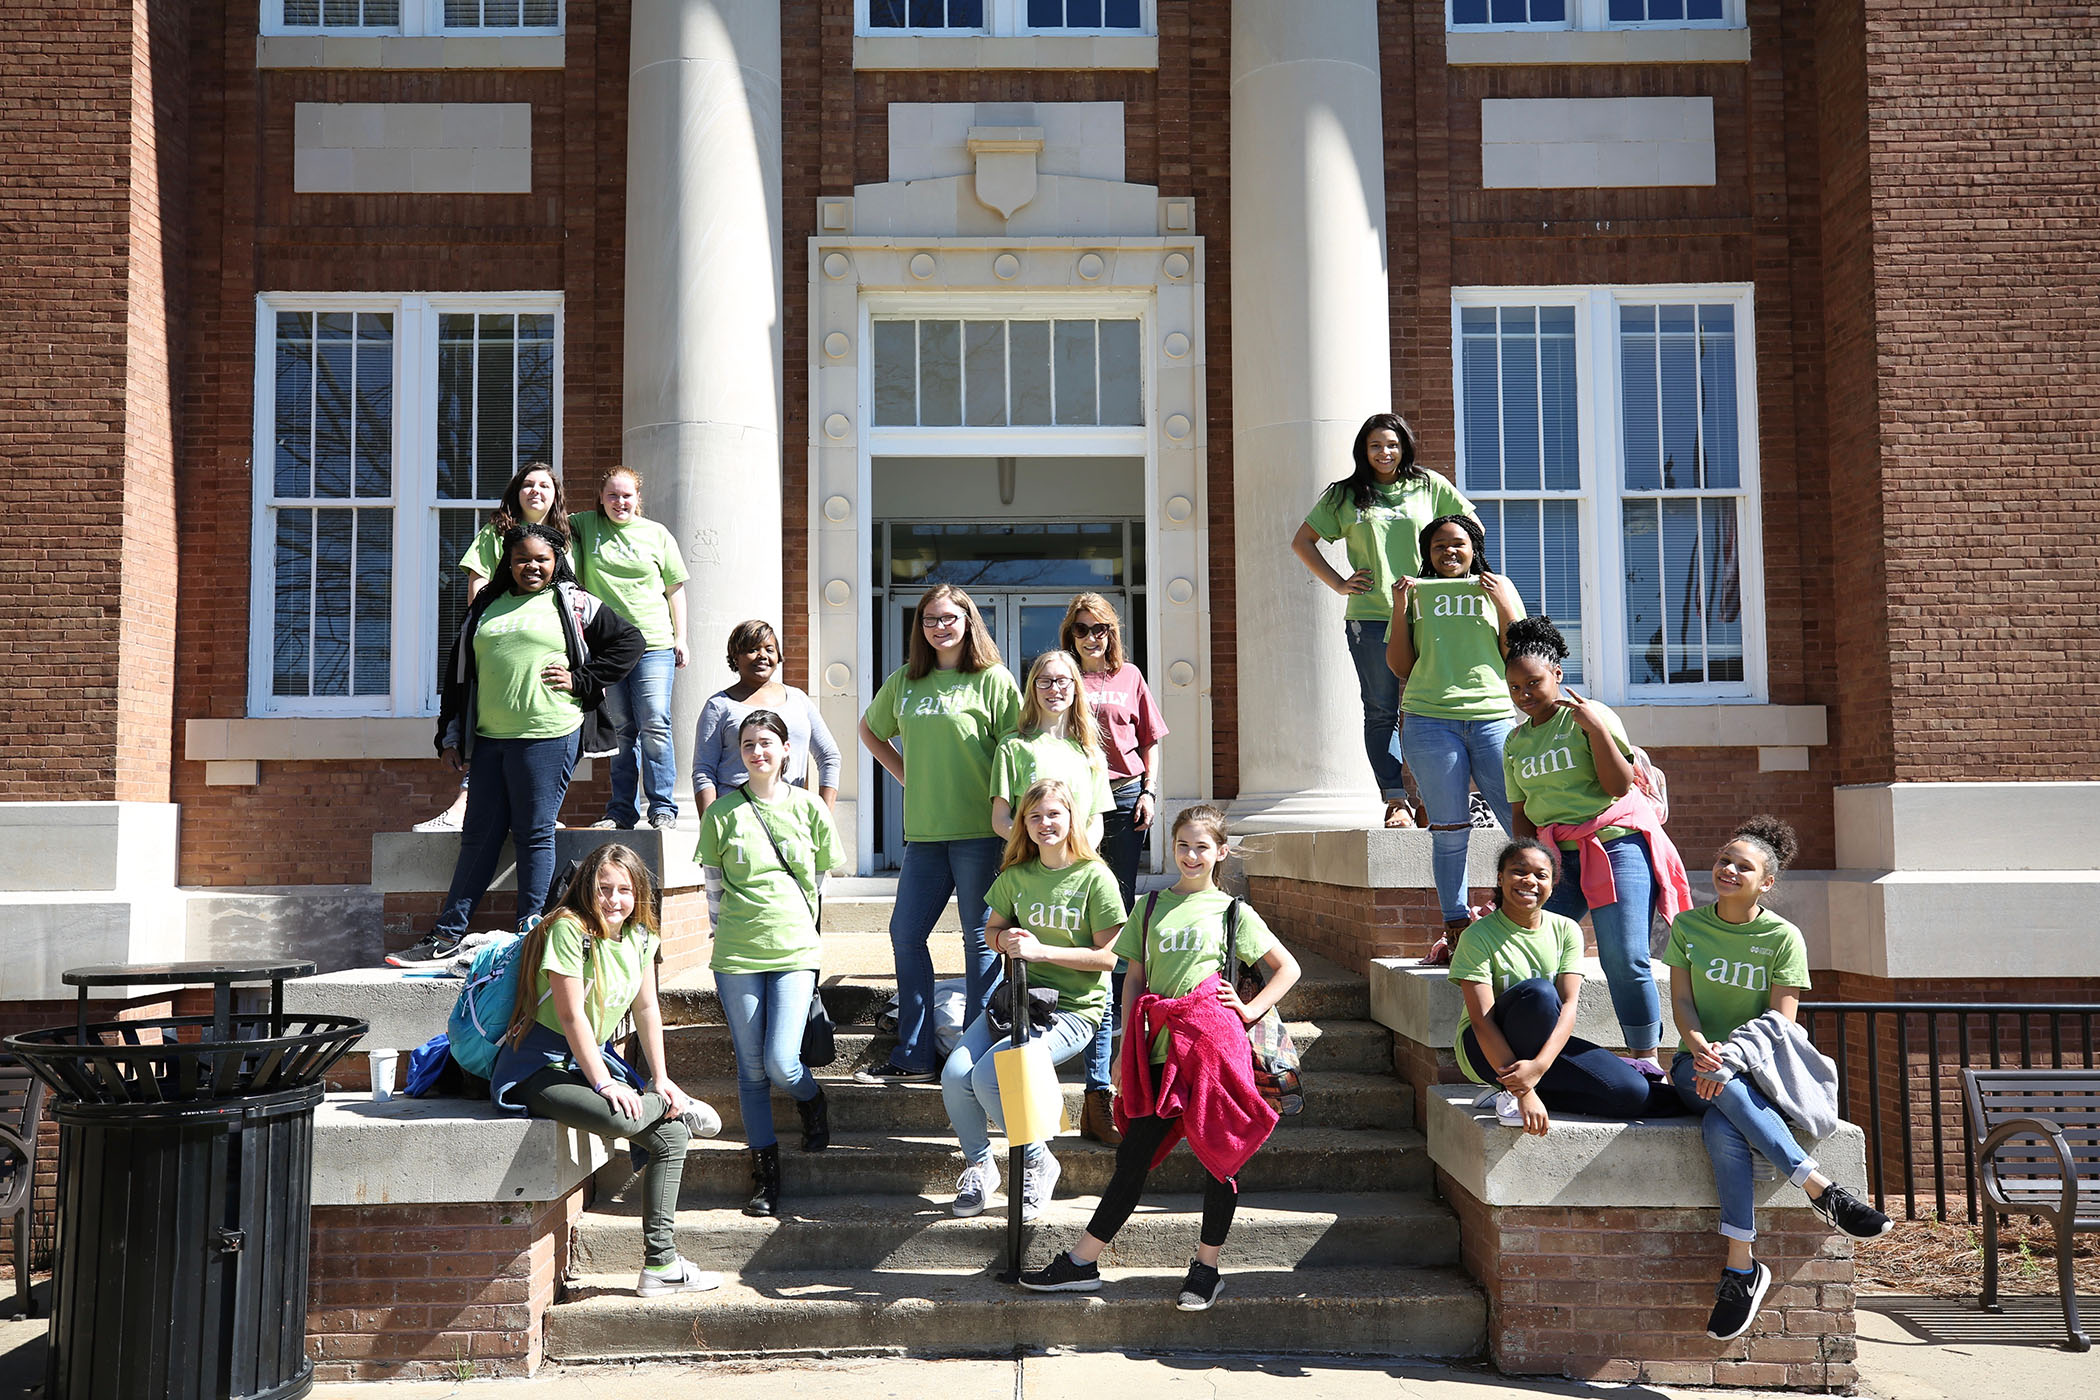 QJH students participated in the I am Girl program at MSU.